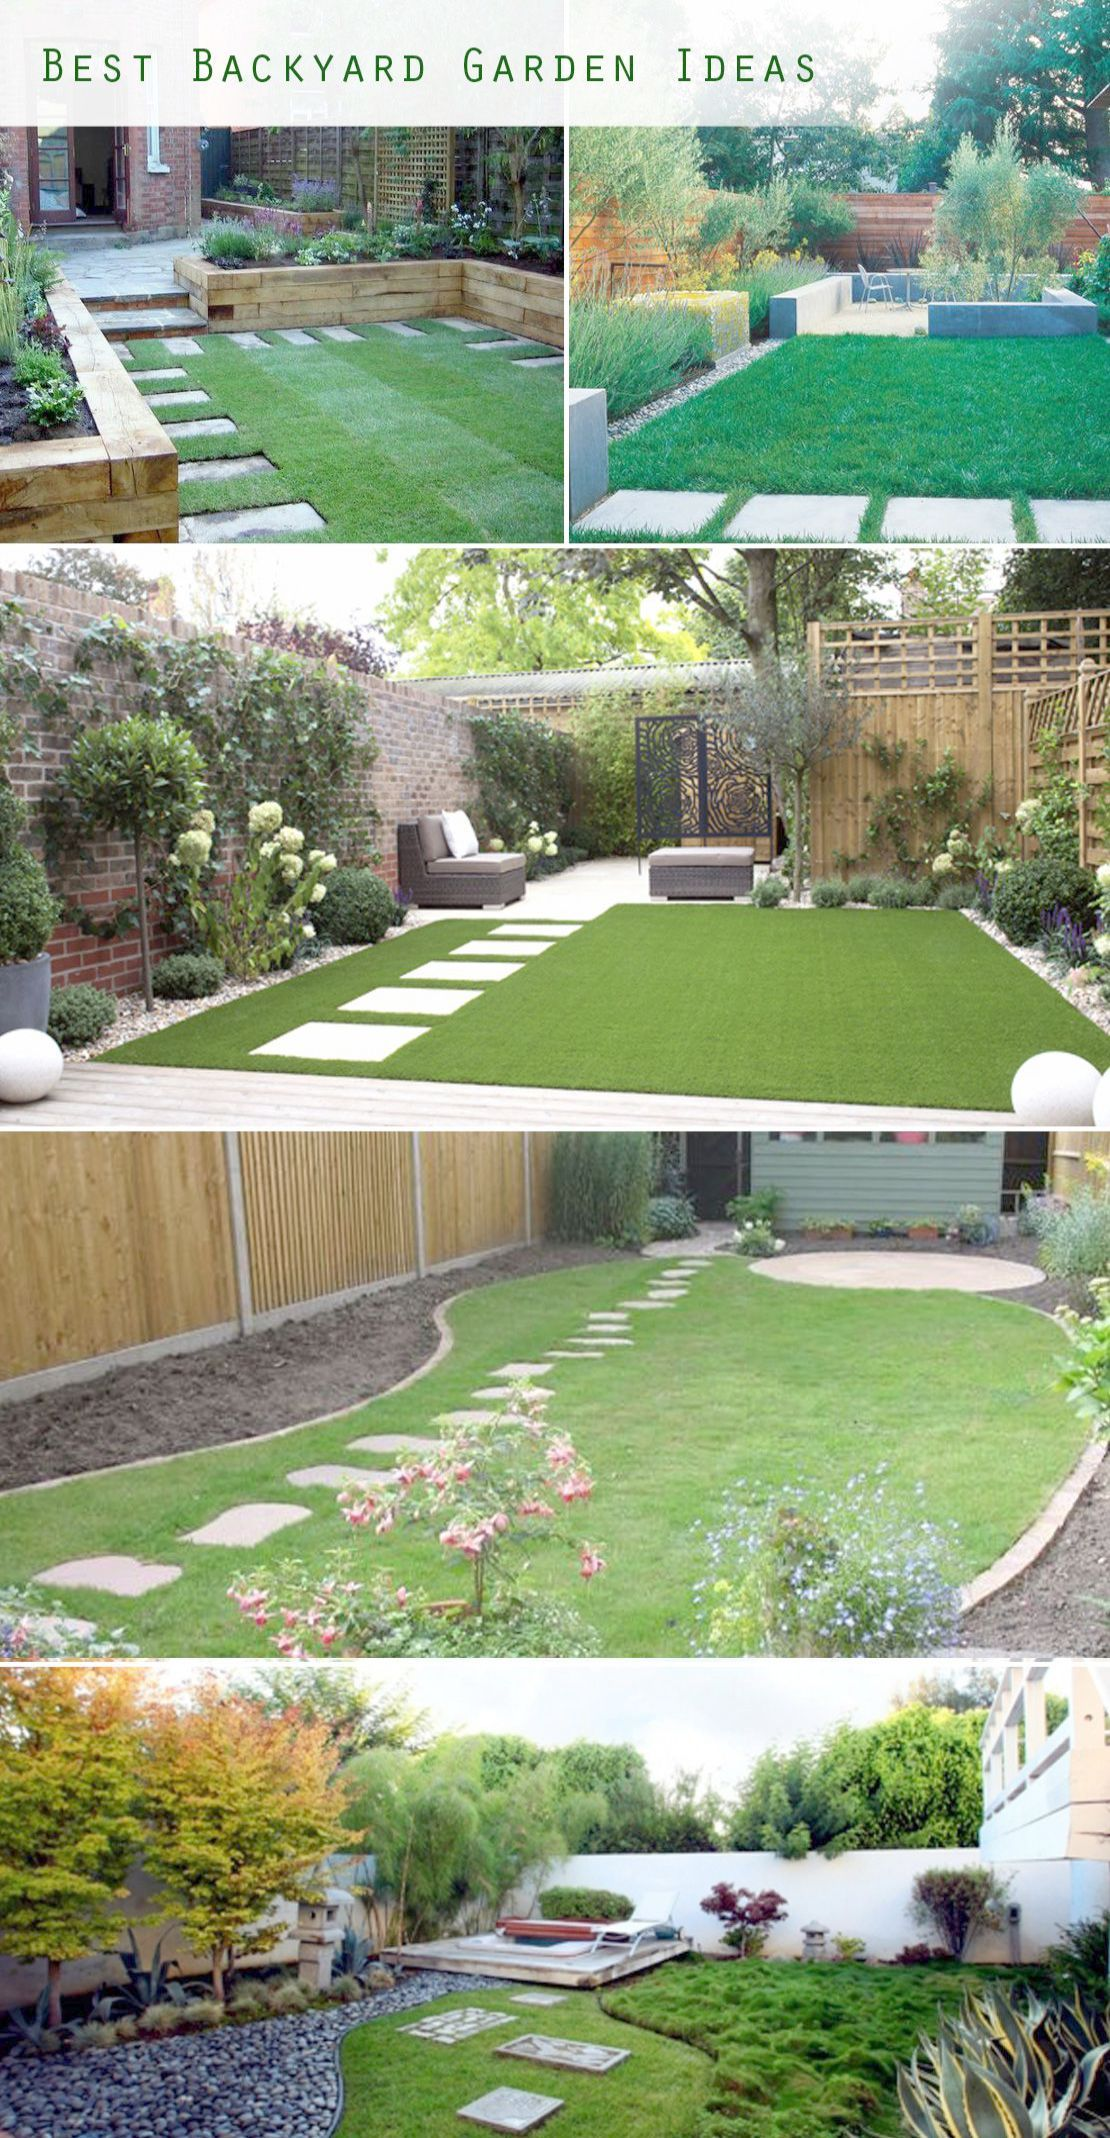 All There Is To Know When It Comes To Landscaping (mit Bildern